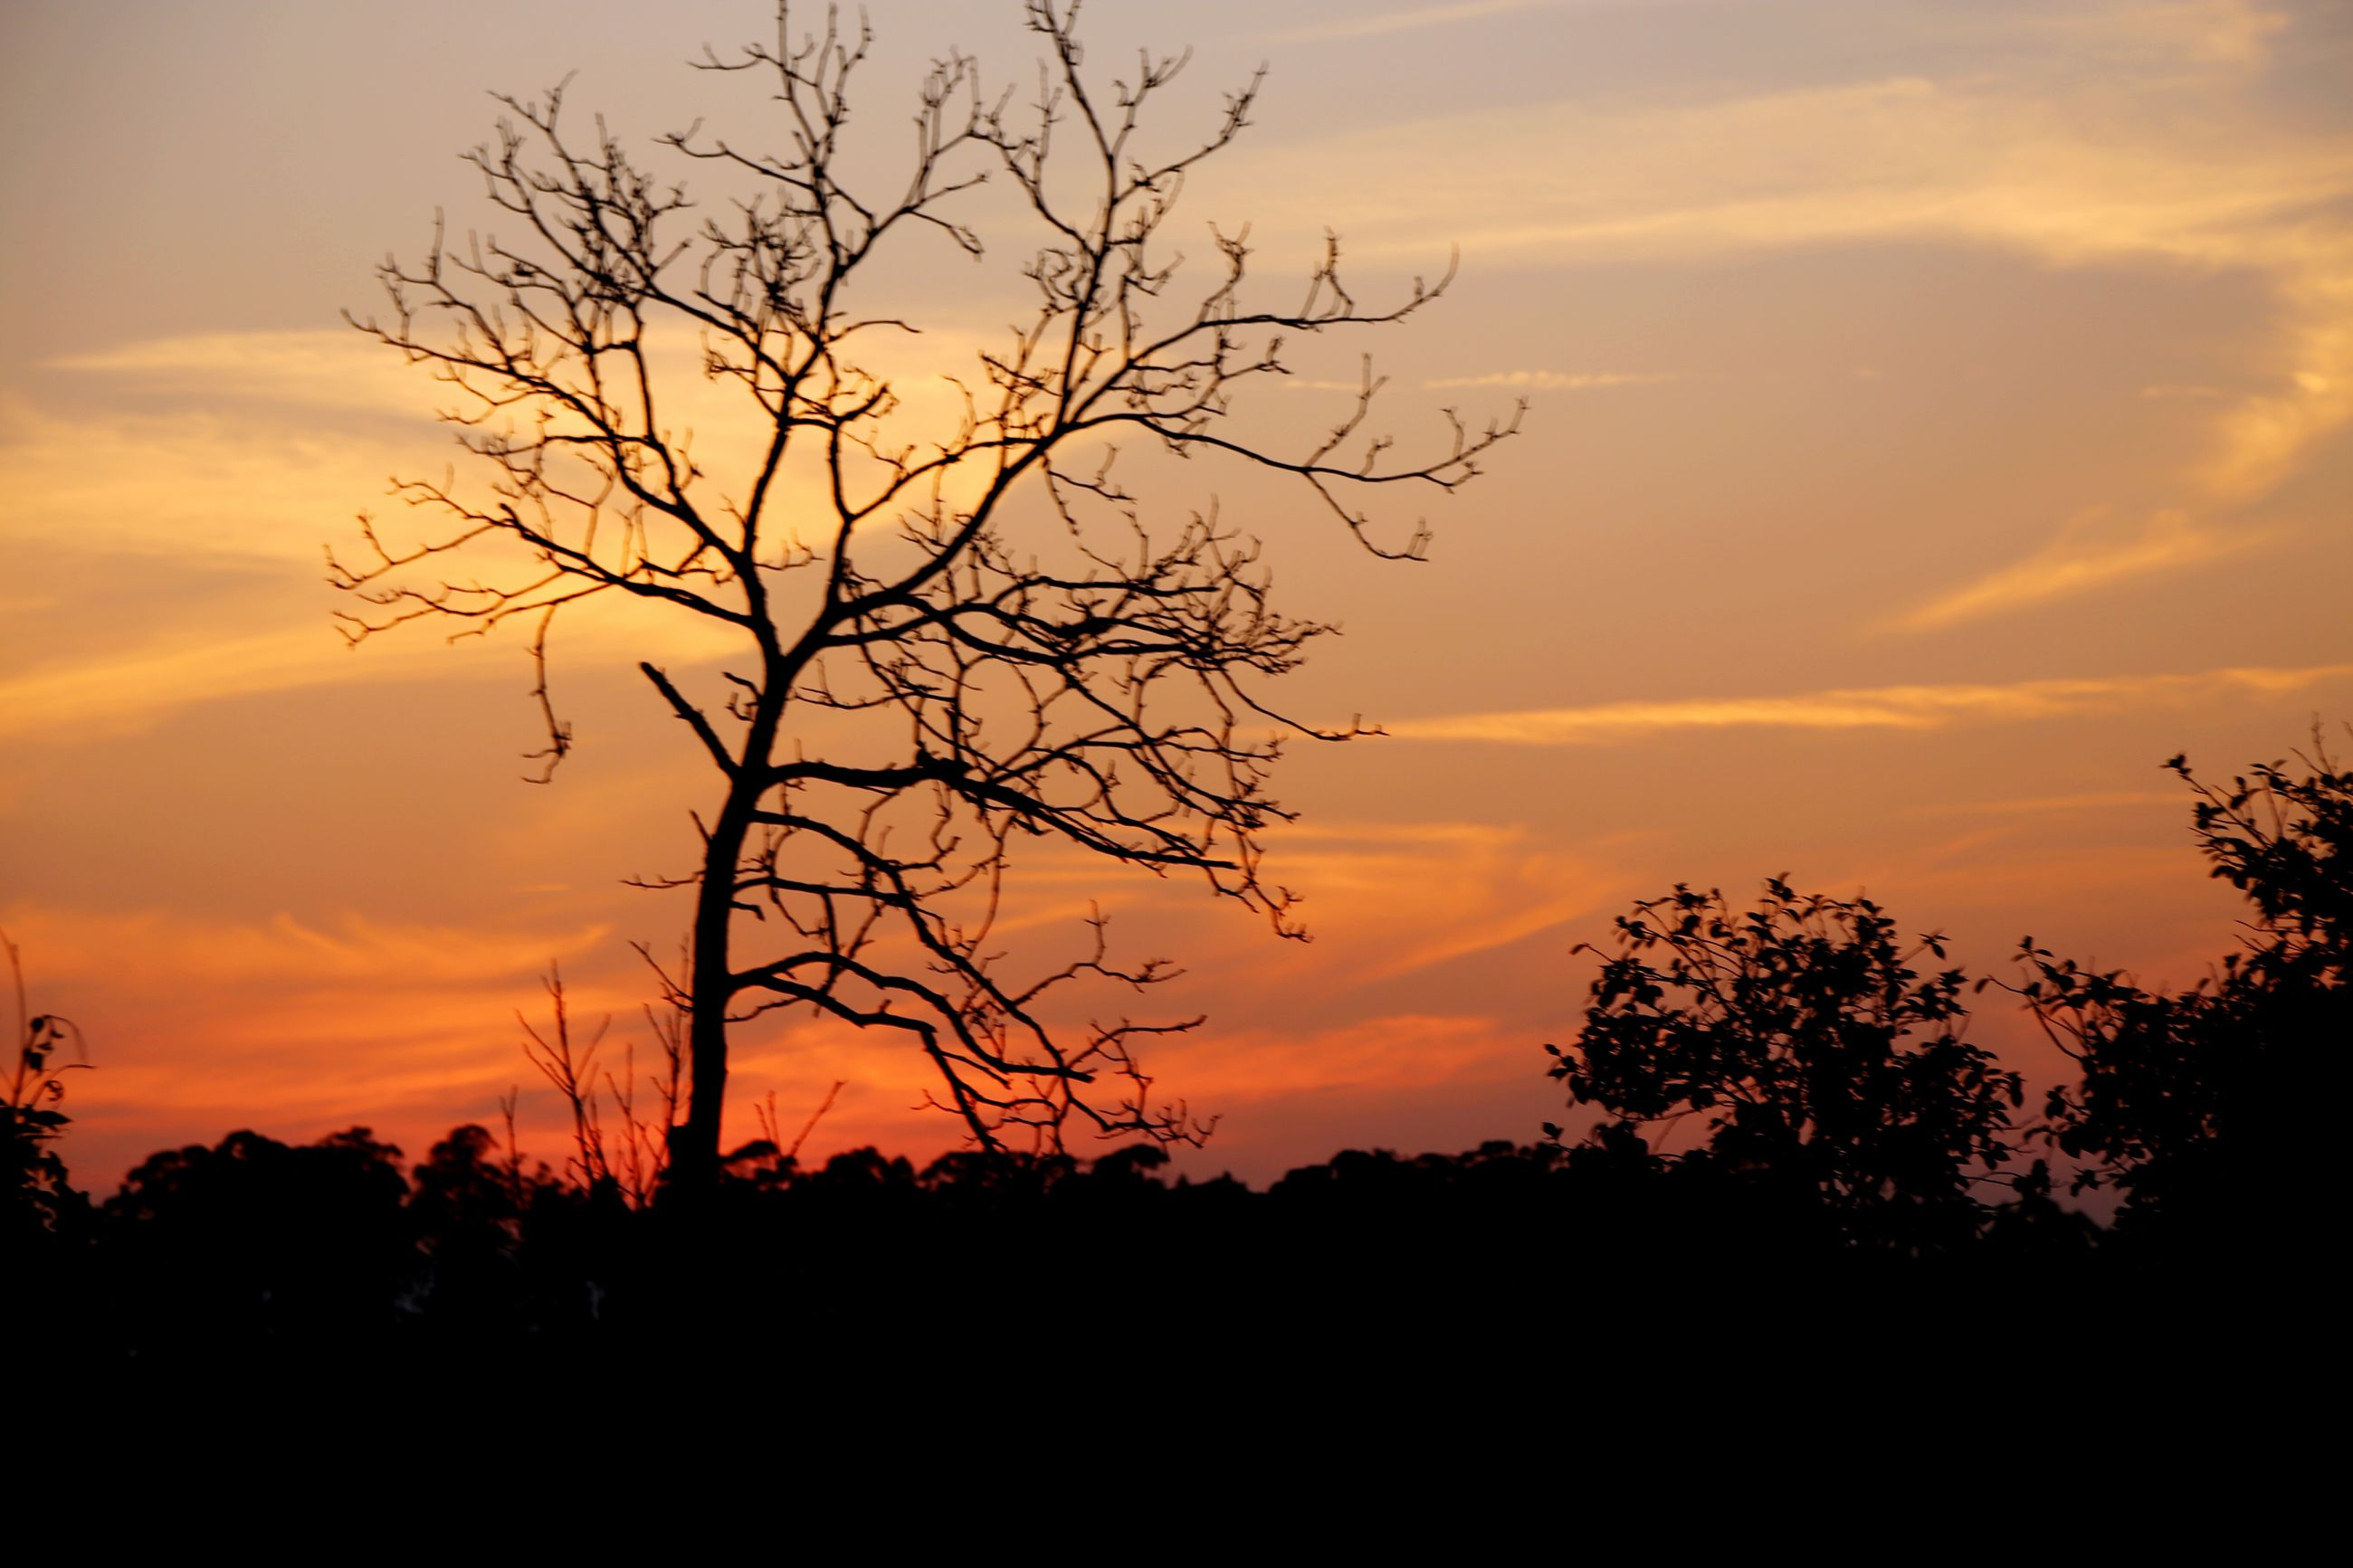 sunset, silhouette, tree, sky, beauty in nature, tranquility, scenics, tranquil scene, orange color, branch, nature, cloud - sky, idyllic, dramatic sky, bare tree, cloud, majestic, landscape, growth, low angle view